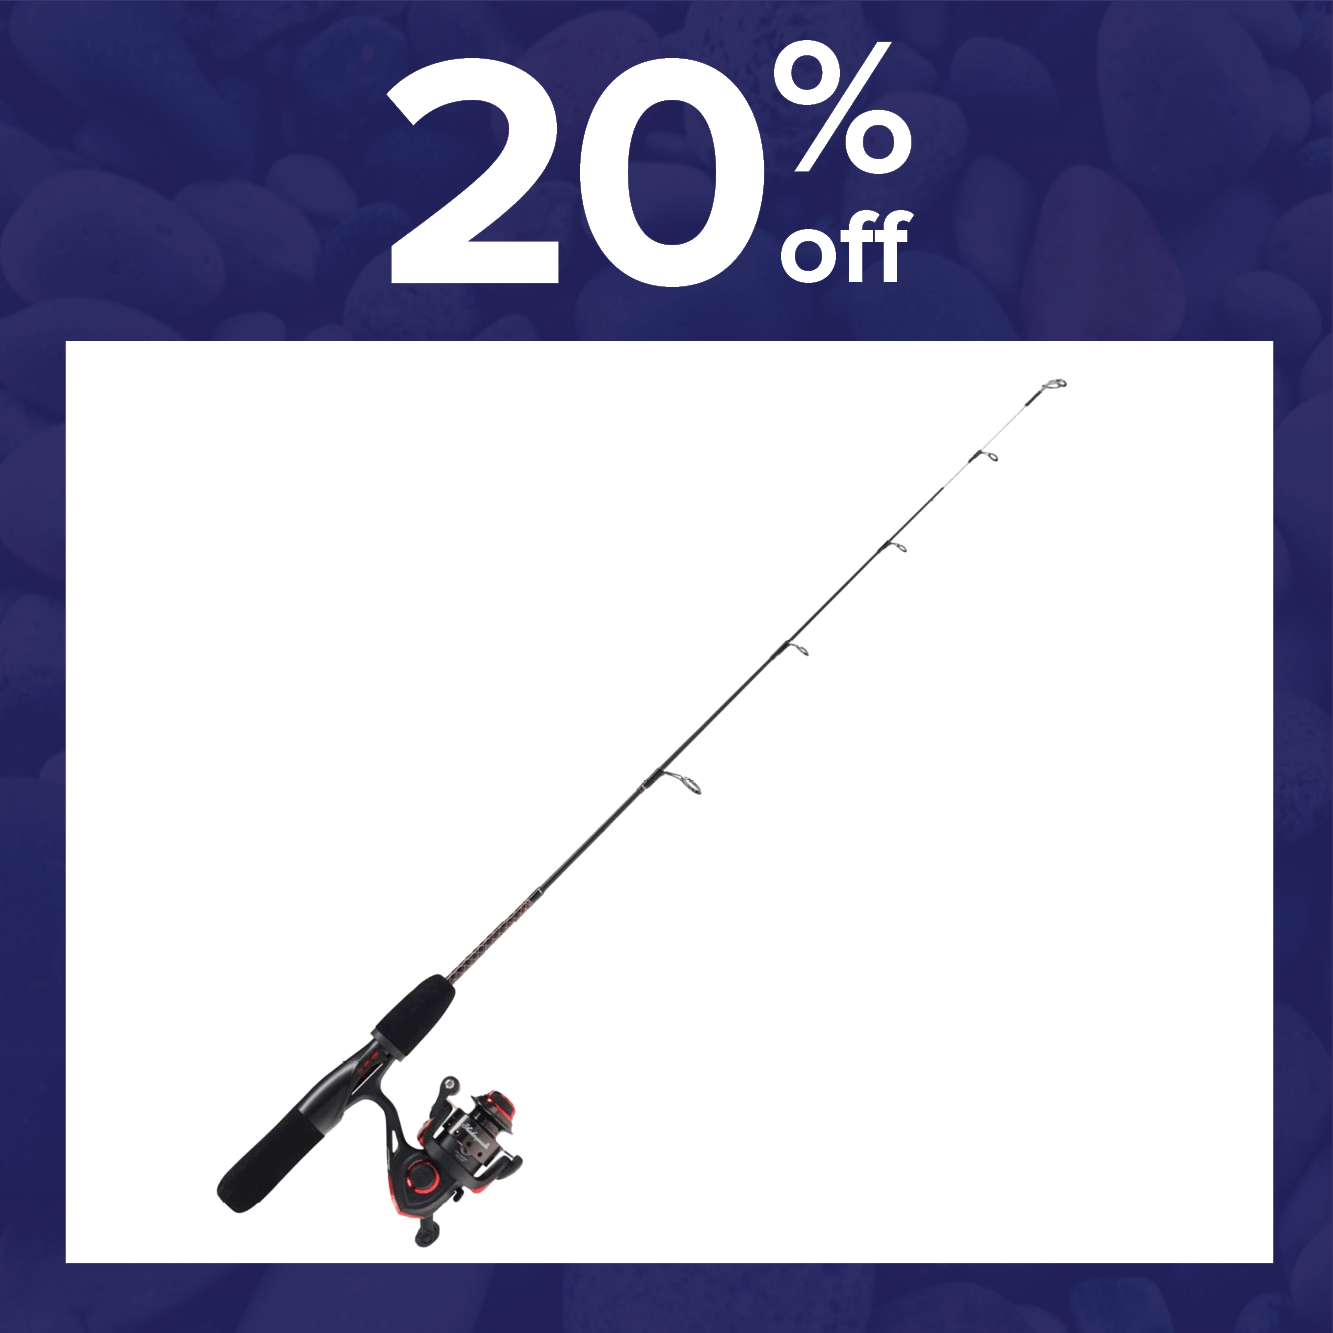 20% off the Shakespeare Ugly Stik GX2 Ice Combo